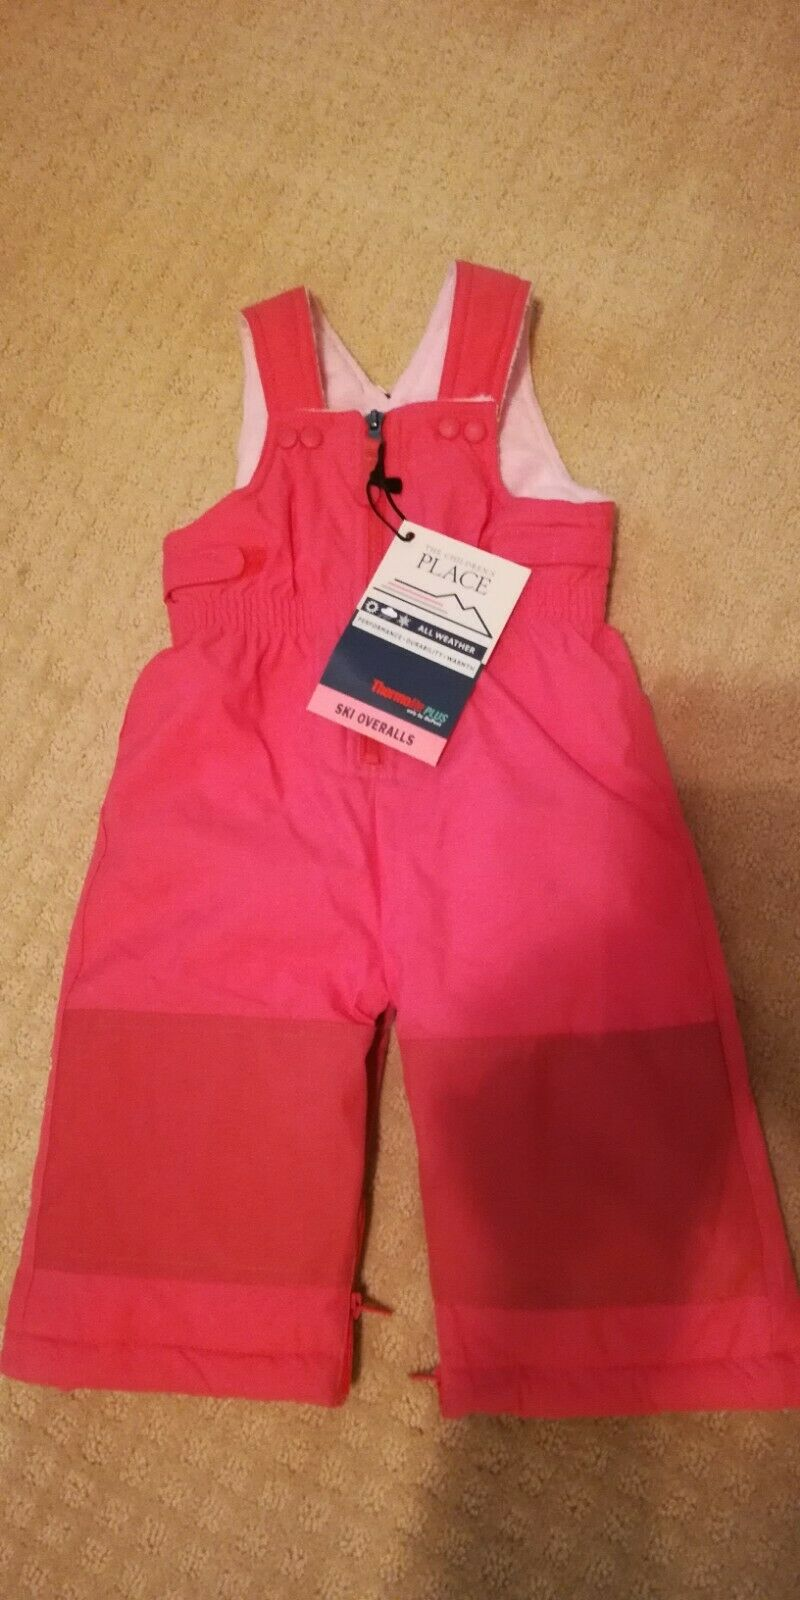 NWT CHILDRENS PLACE Ski Bib Overalls Snow Suit baby girl 6-9